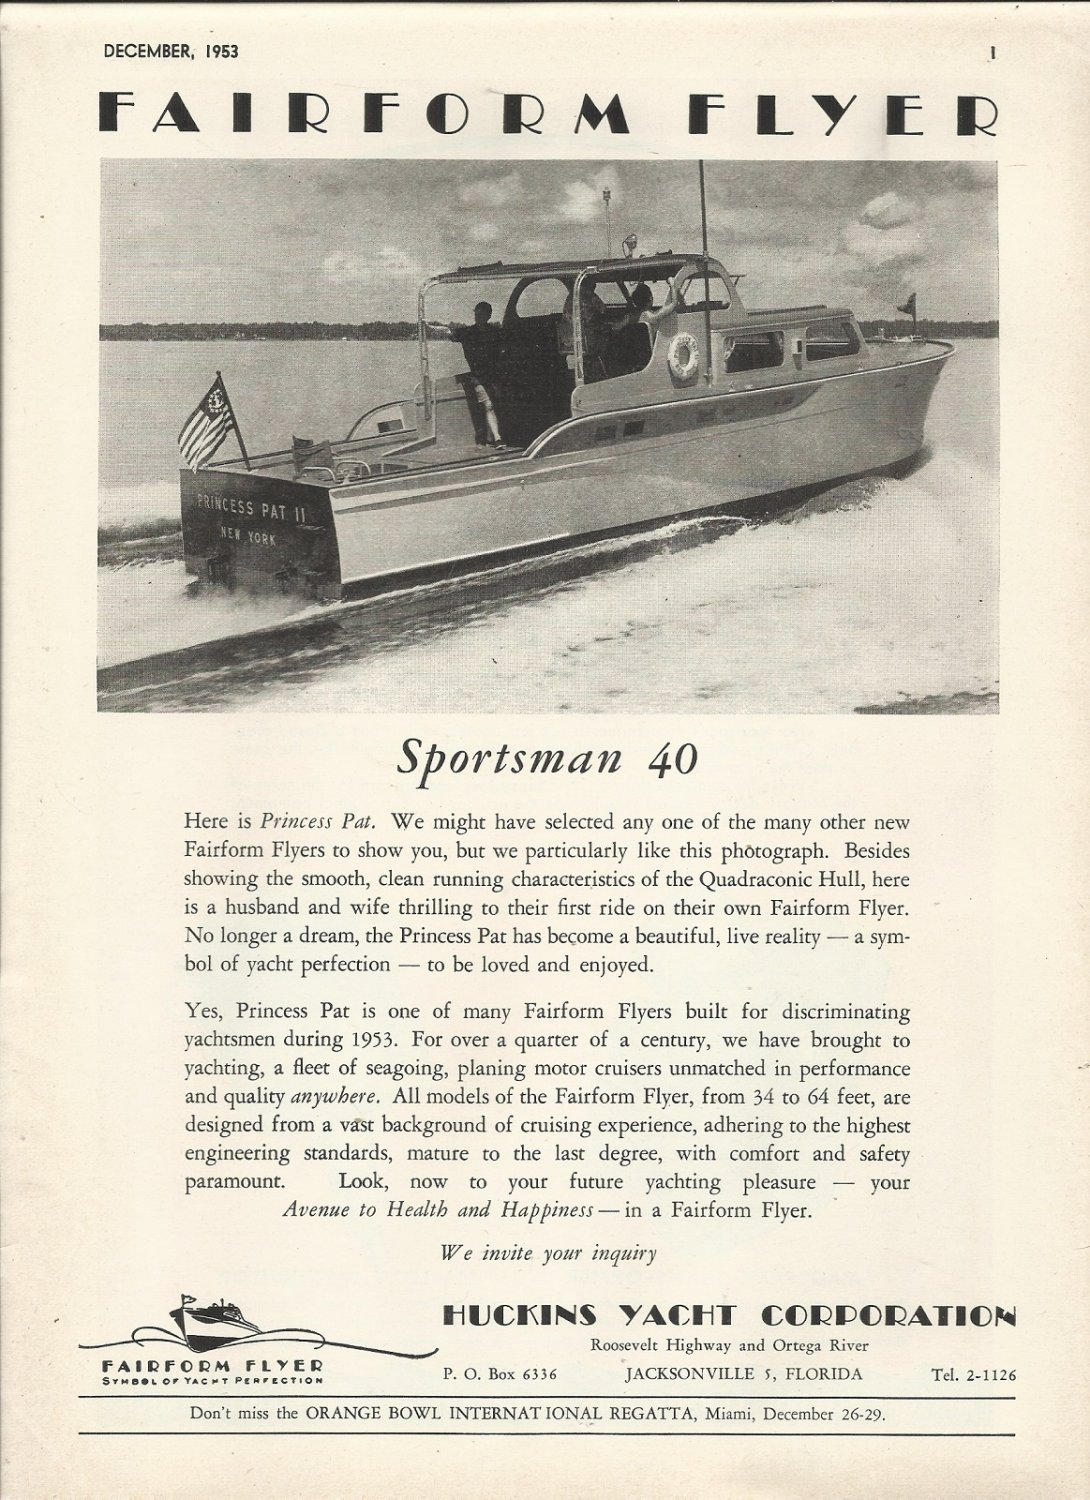 1953 Huckins Yacht Corp Ad- The Sportsman 40